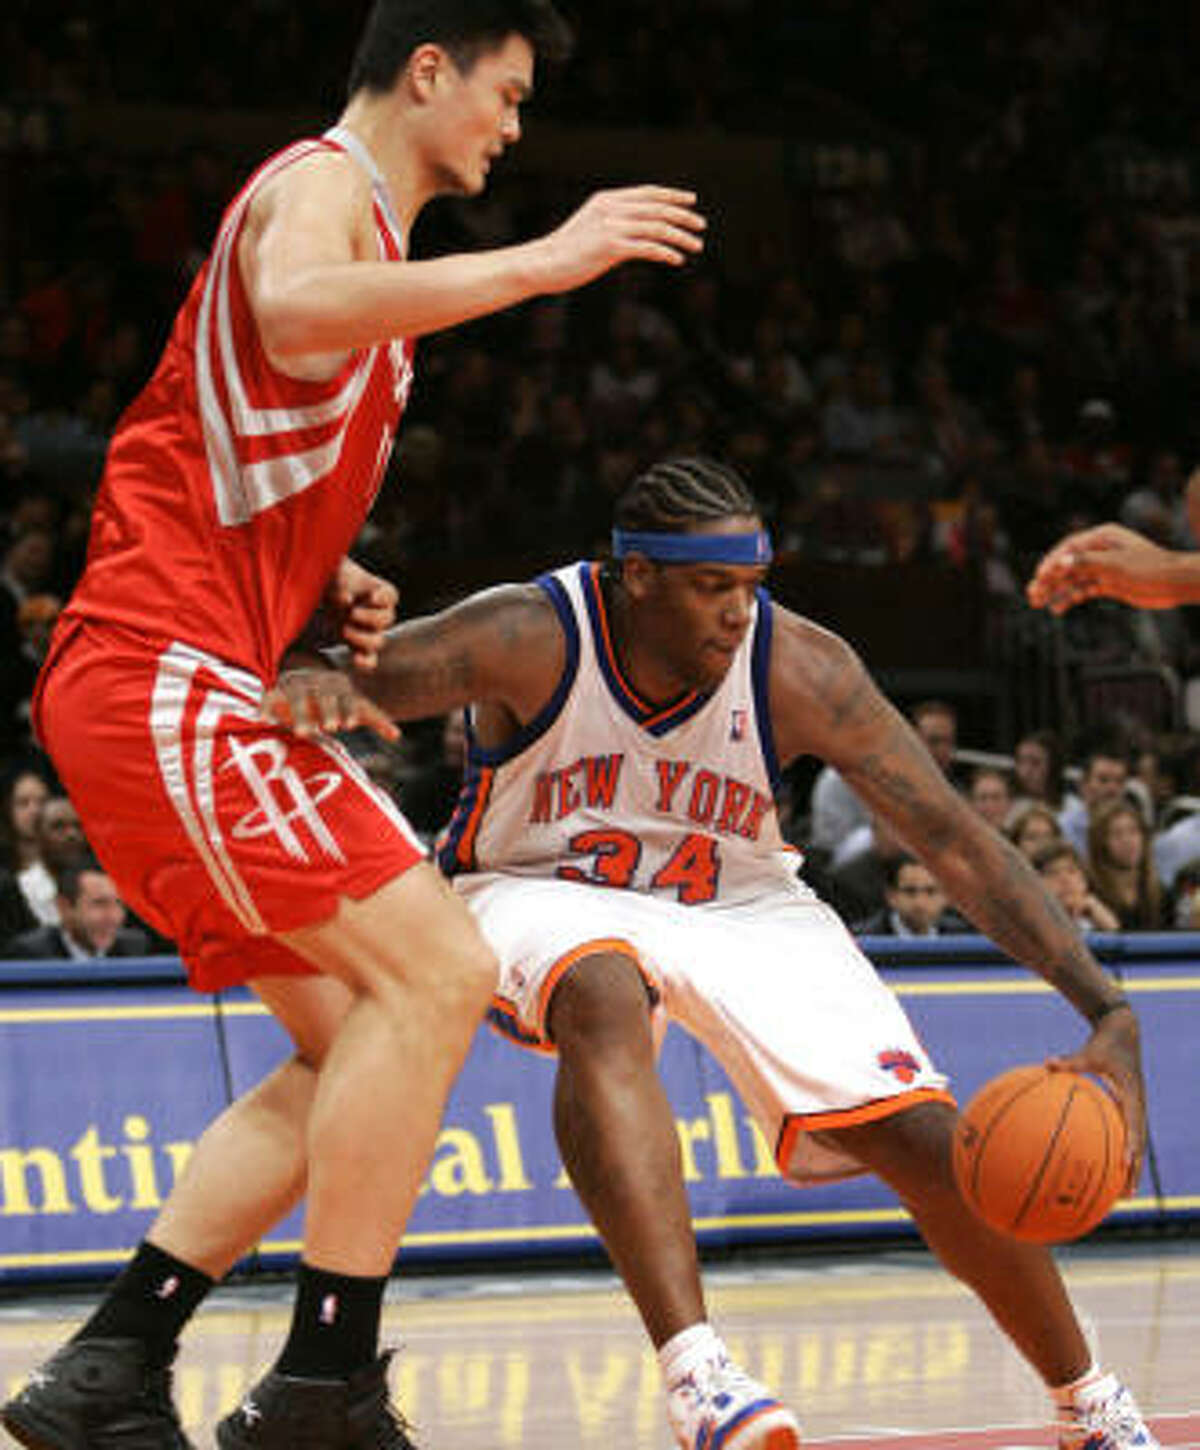 New York's Eddy Curry (34) gets a little elbow room between himself and Yao Ming.